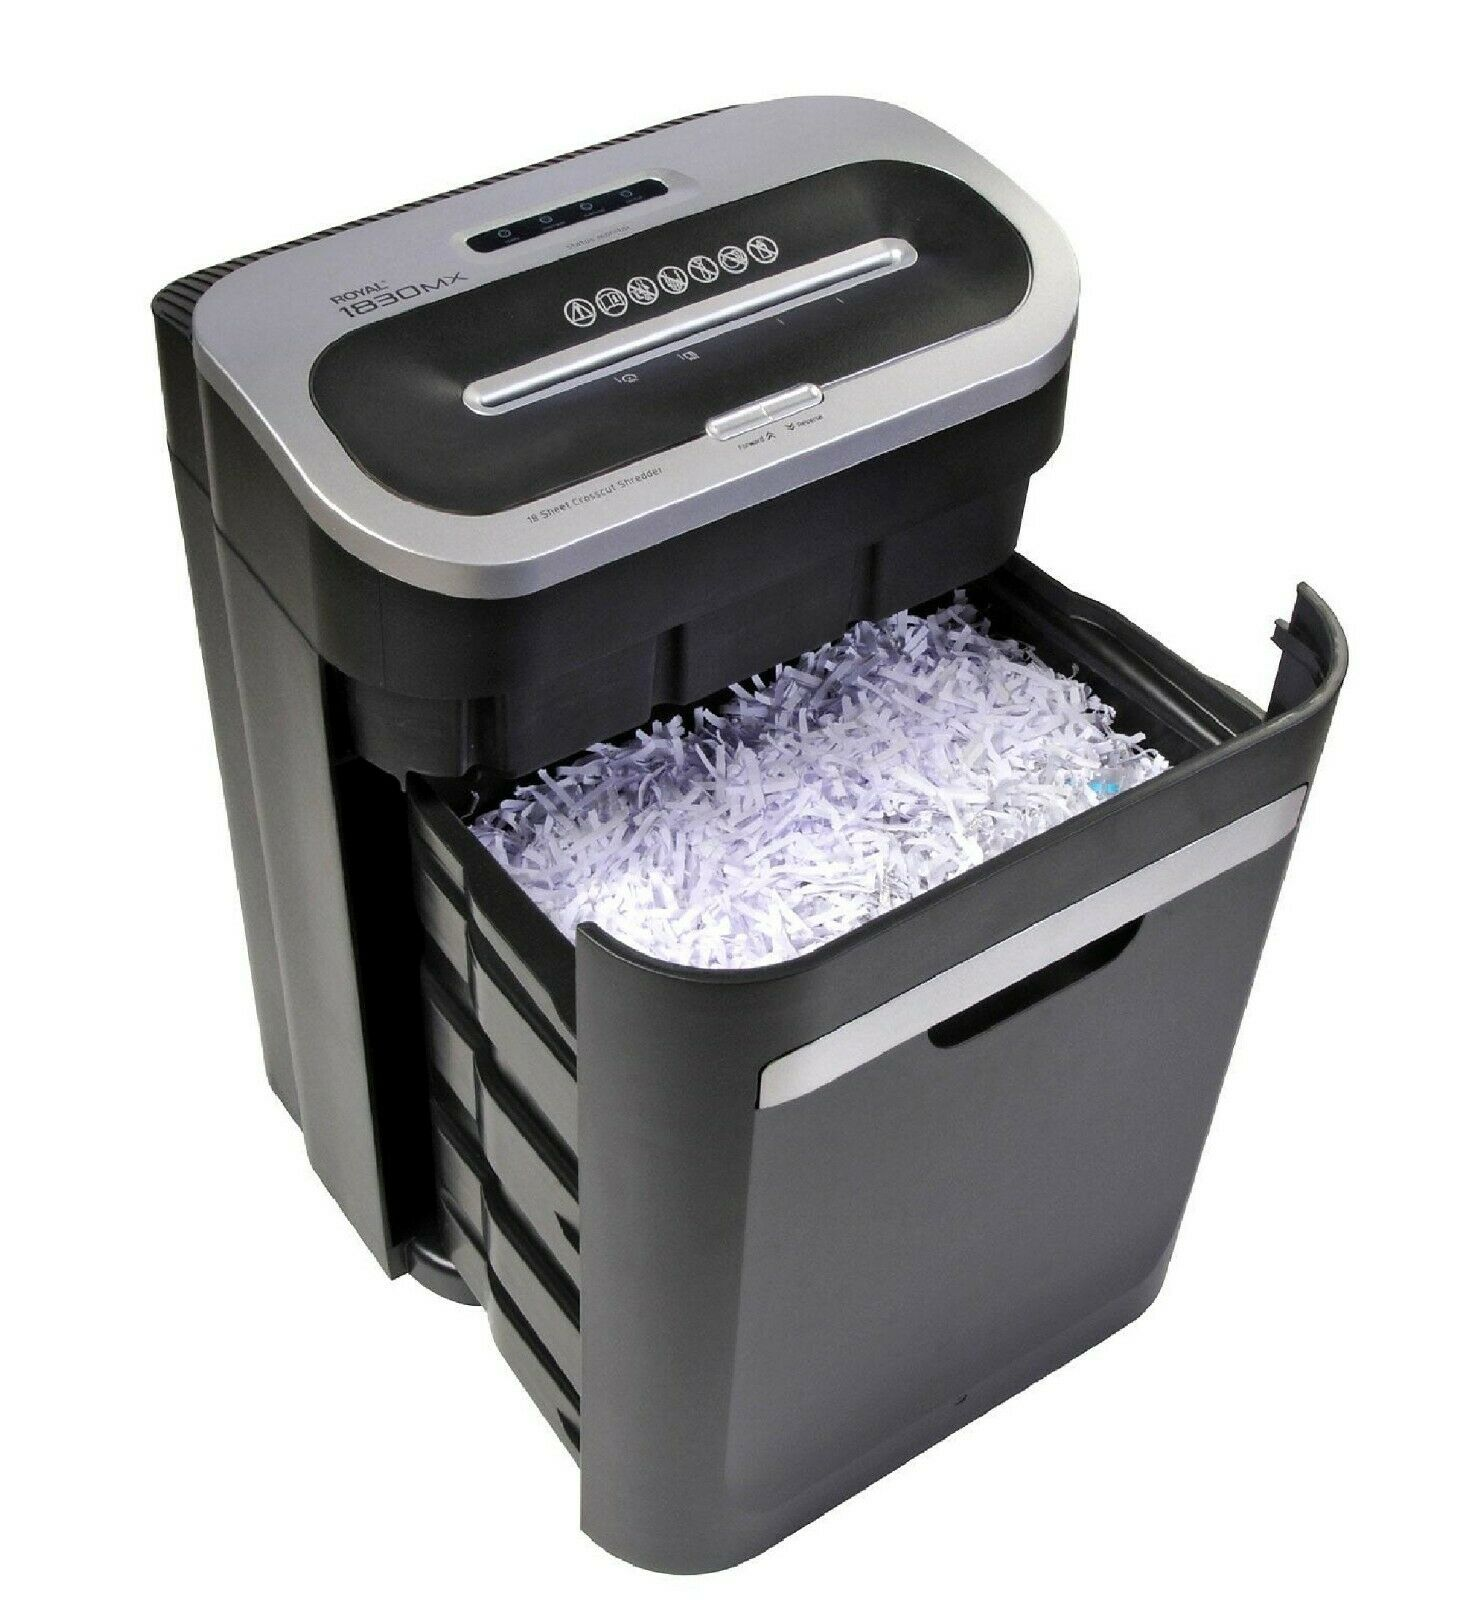 Photo Royal 18 Sheet Cross-Cut Paper Shredder Heavy-Duty Large Capacity 1830MX